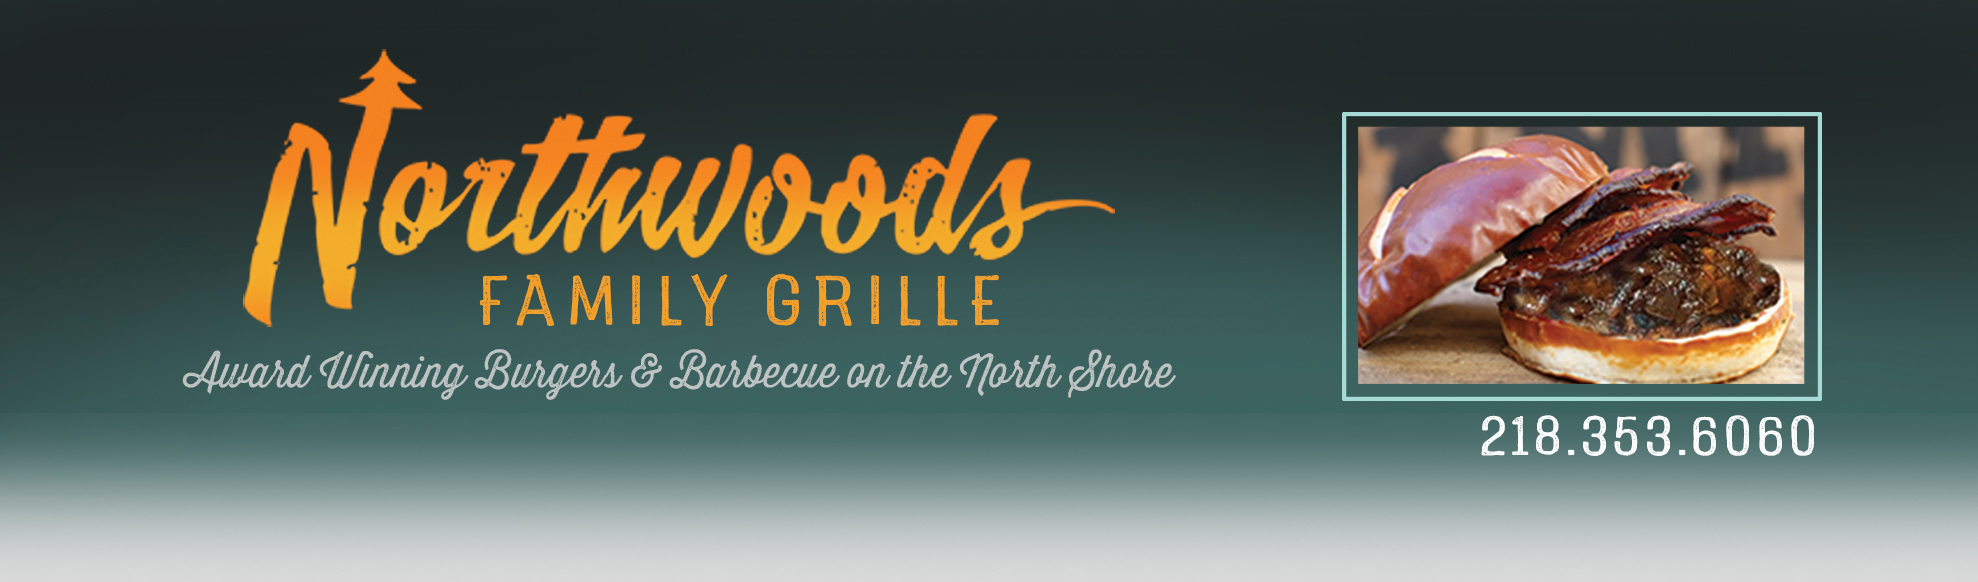 Northwoods Family Grille Banner